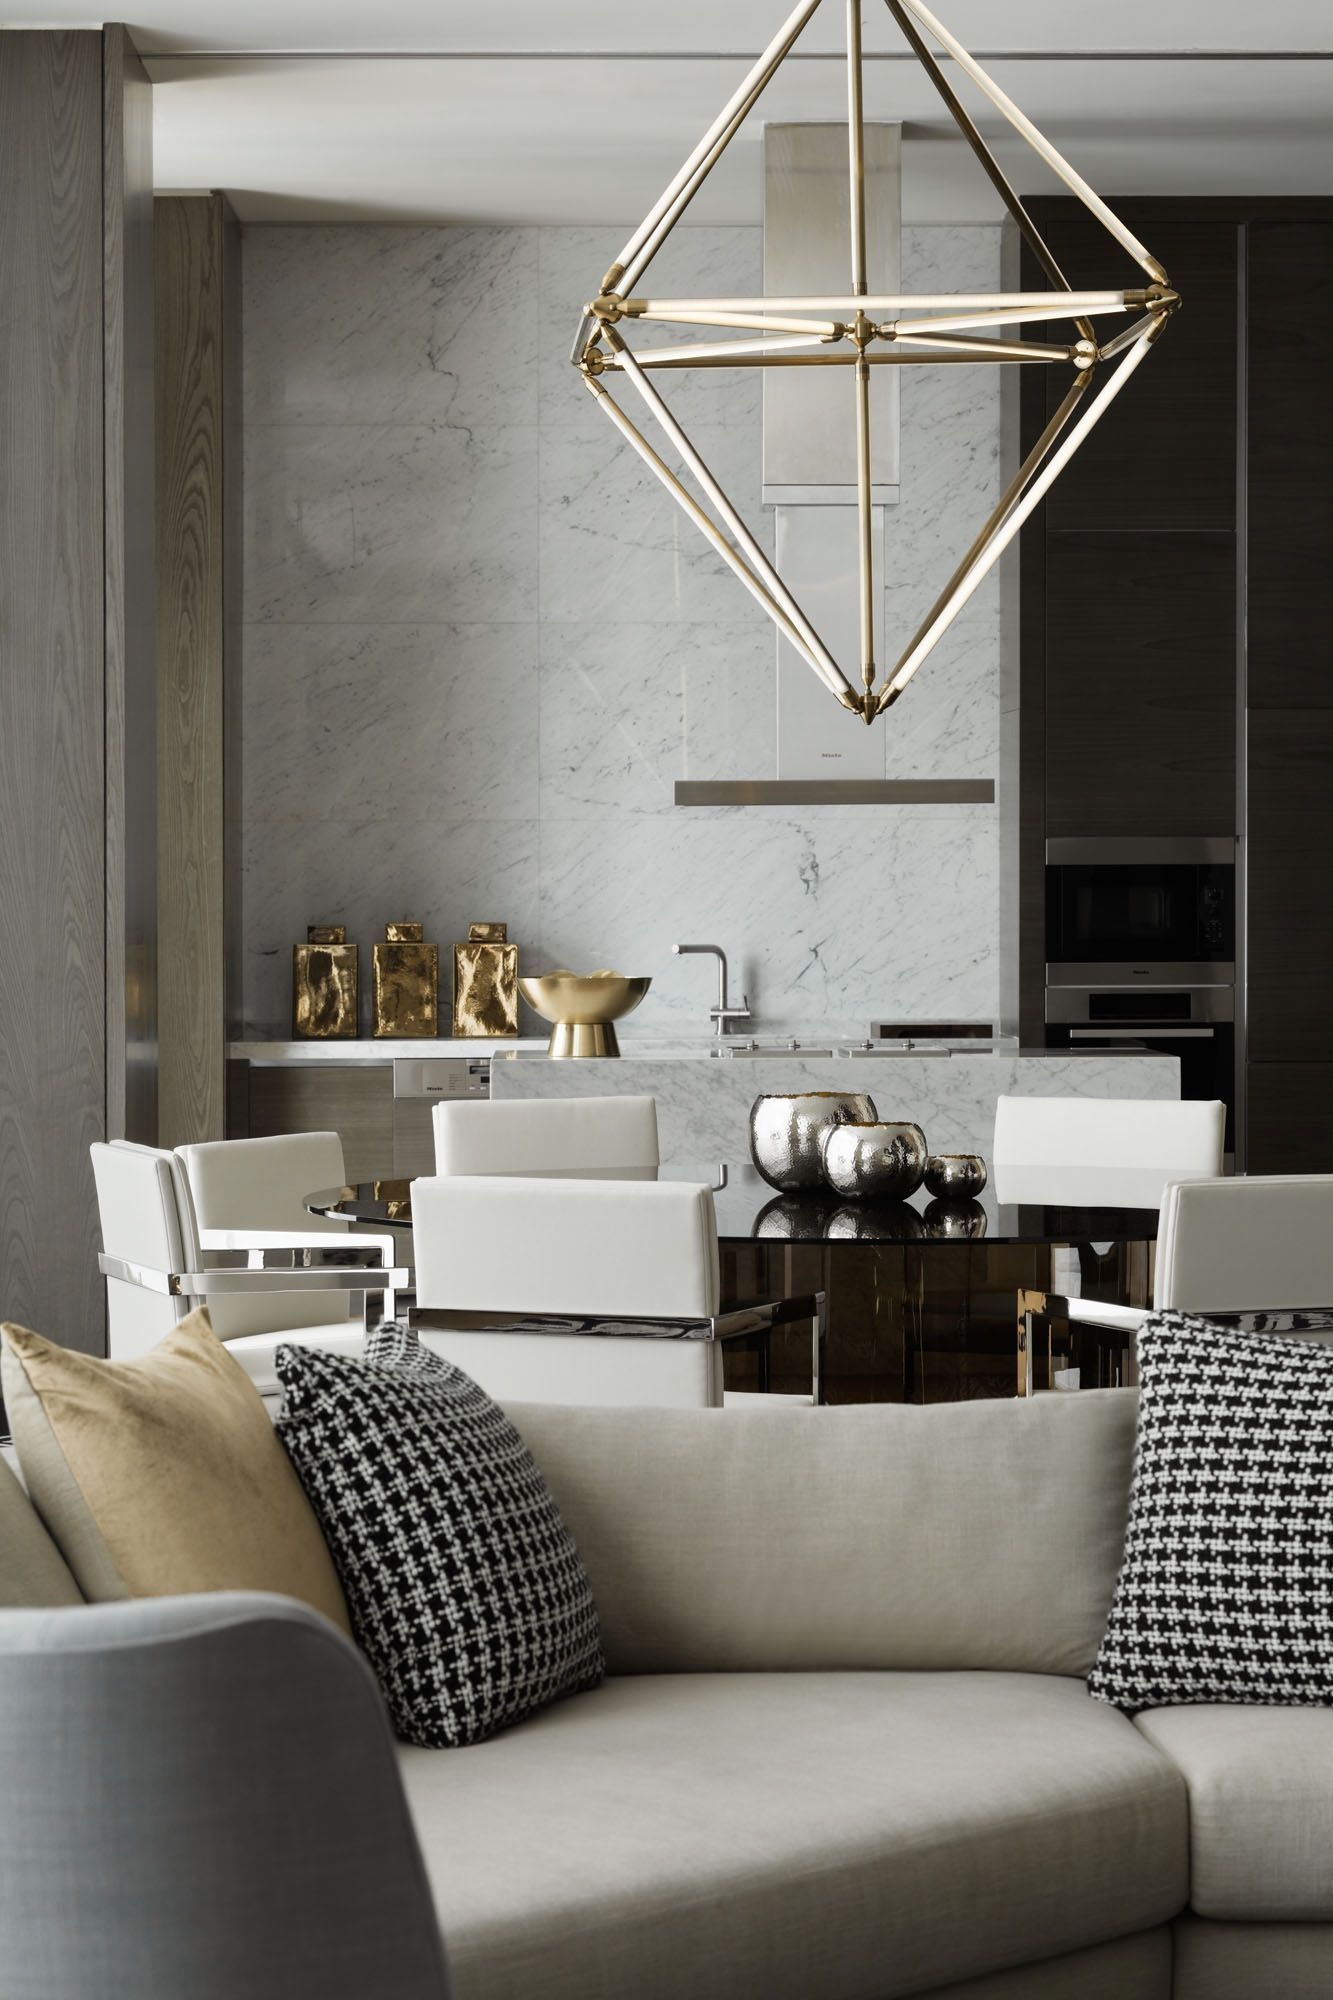 Latest Interior Design For Living Room: Have Access To The Best Interior Design Inspirations For